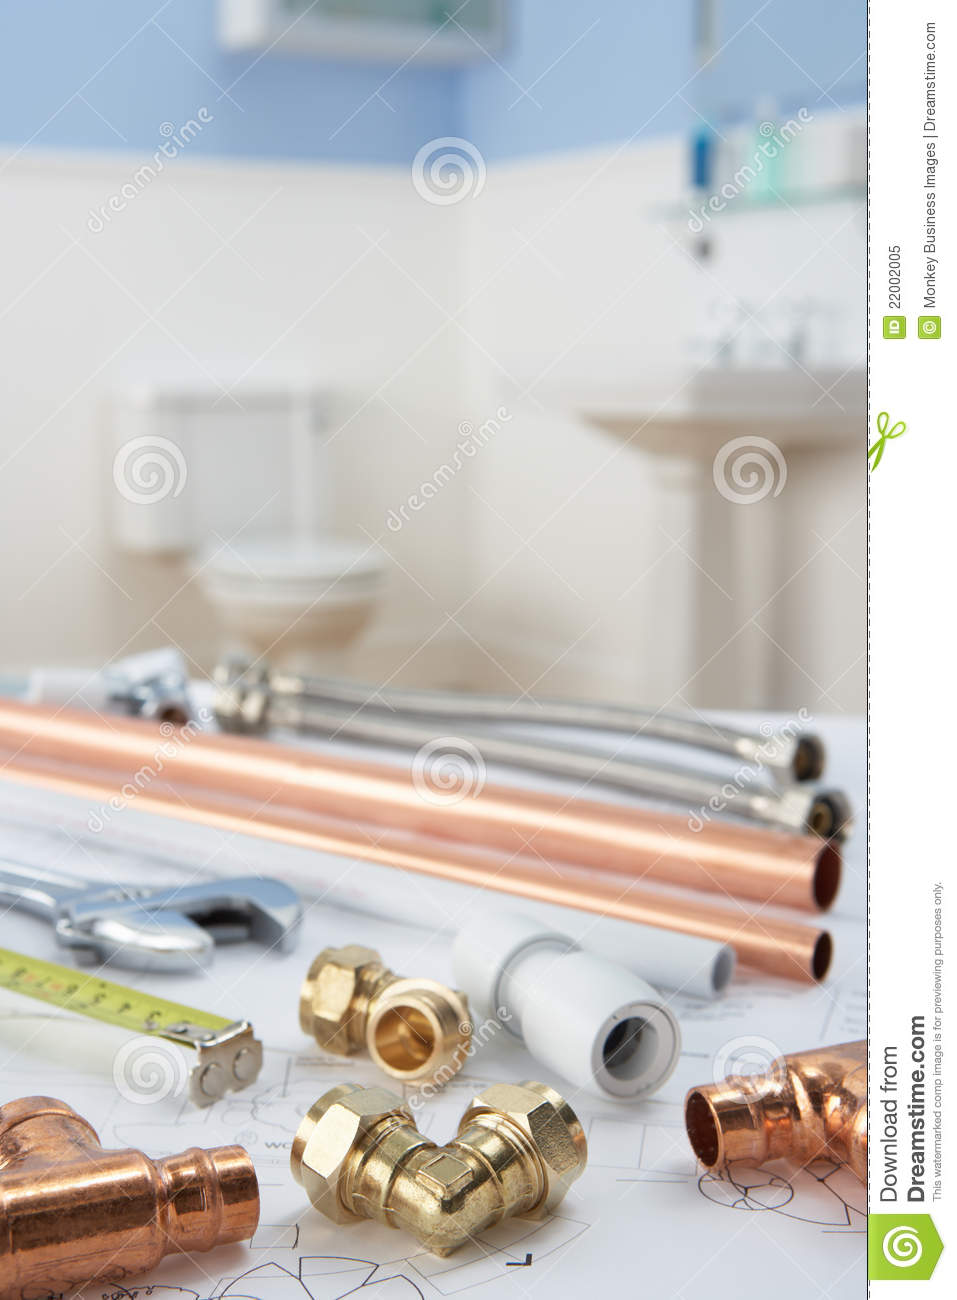 Plumbing tools and materials royalty free stock photo